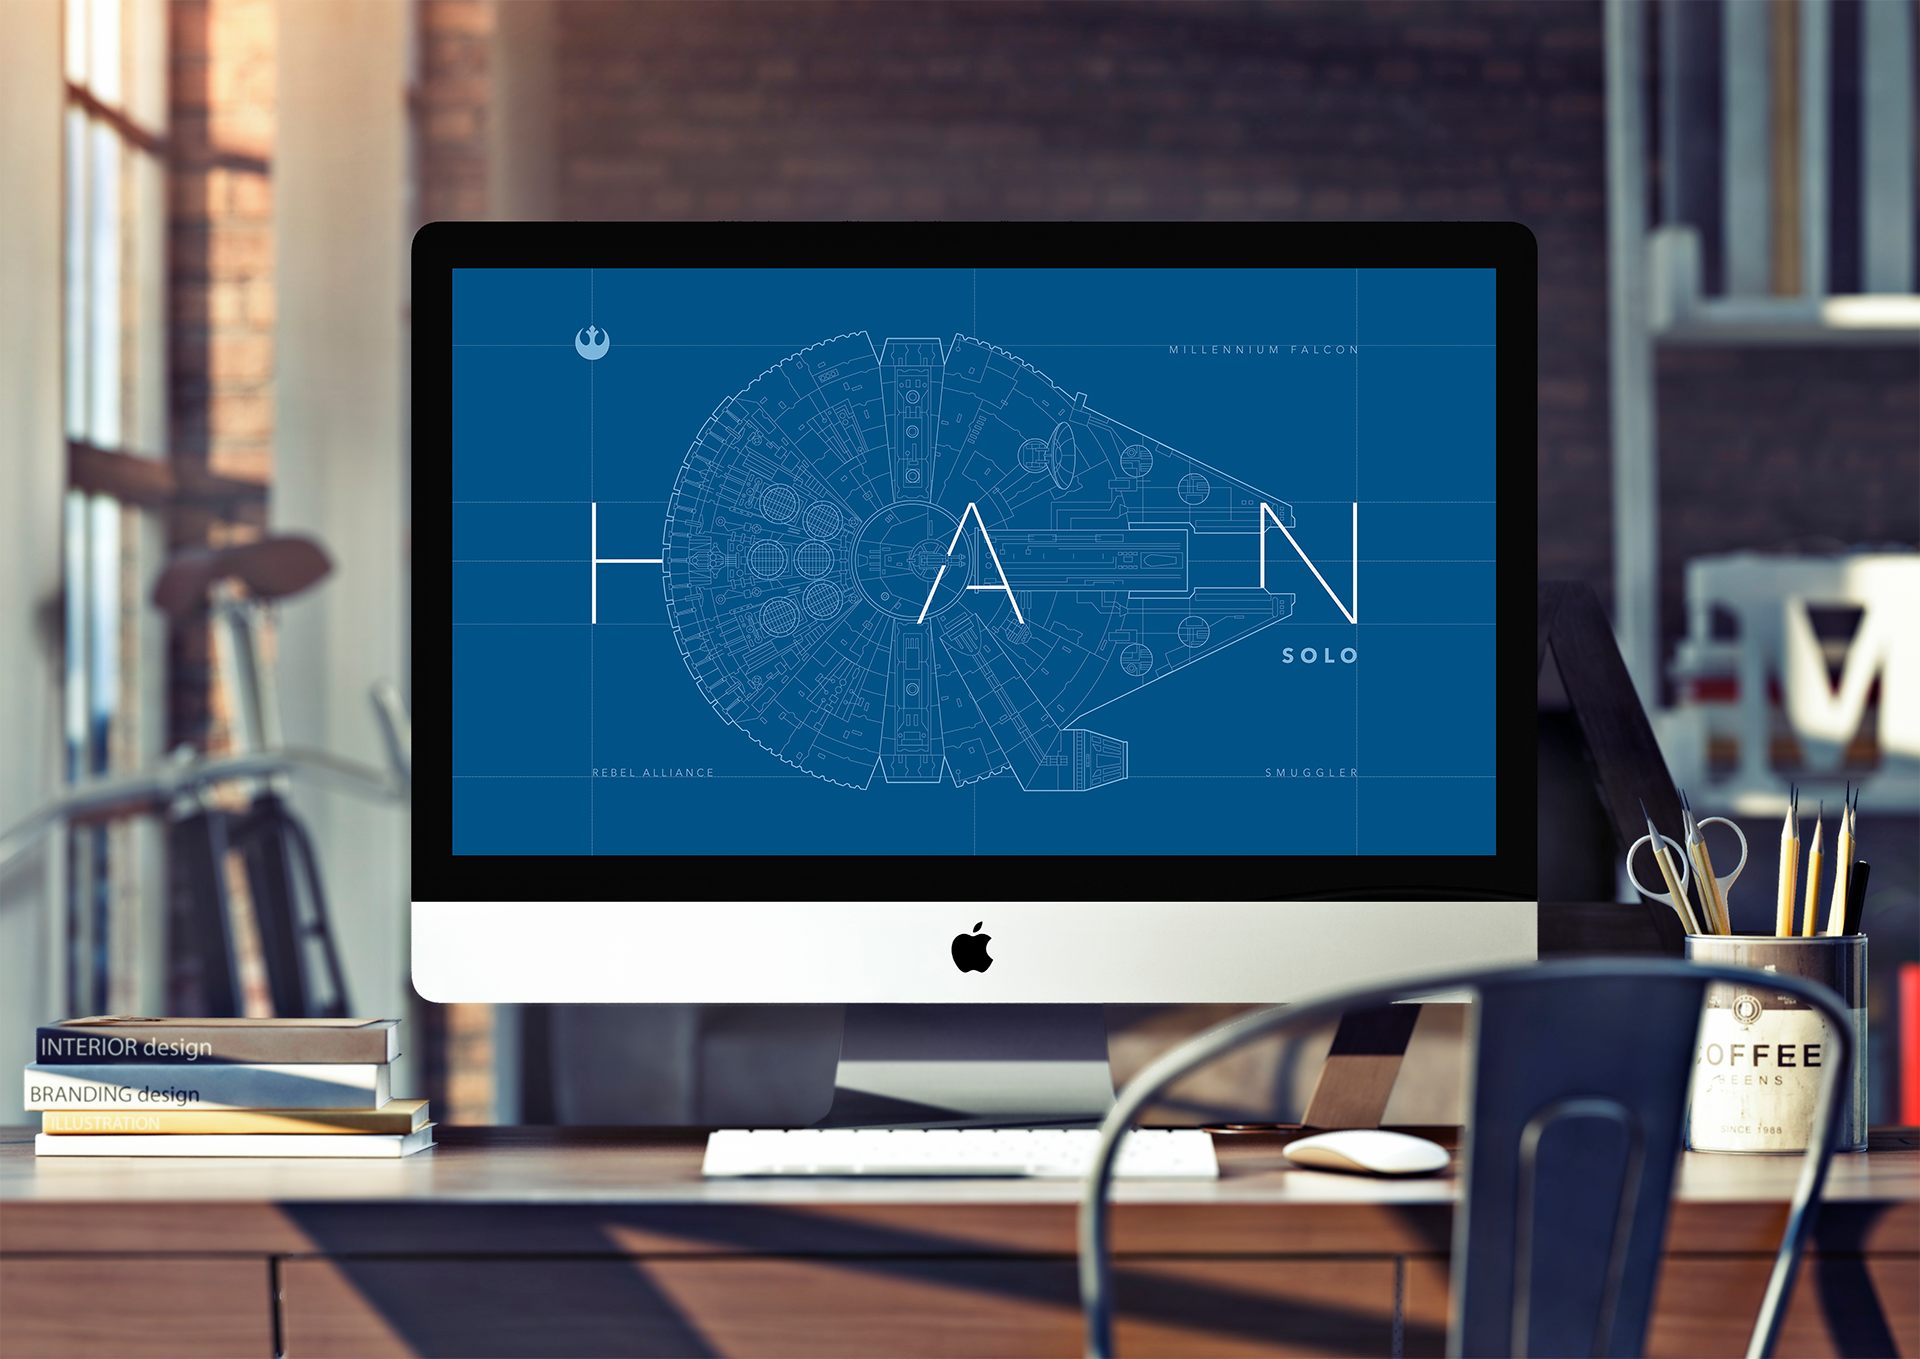 Star Wars Han Solo Schematic Design By Tall Tale Digital On Dribbble